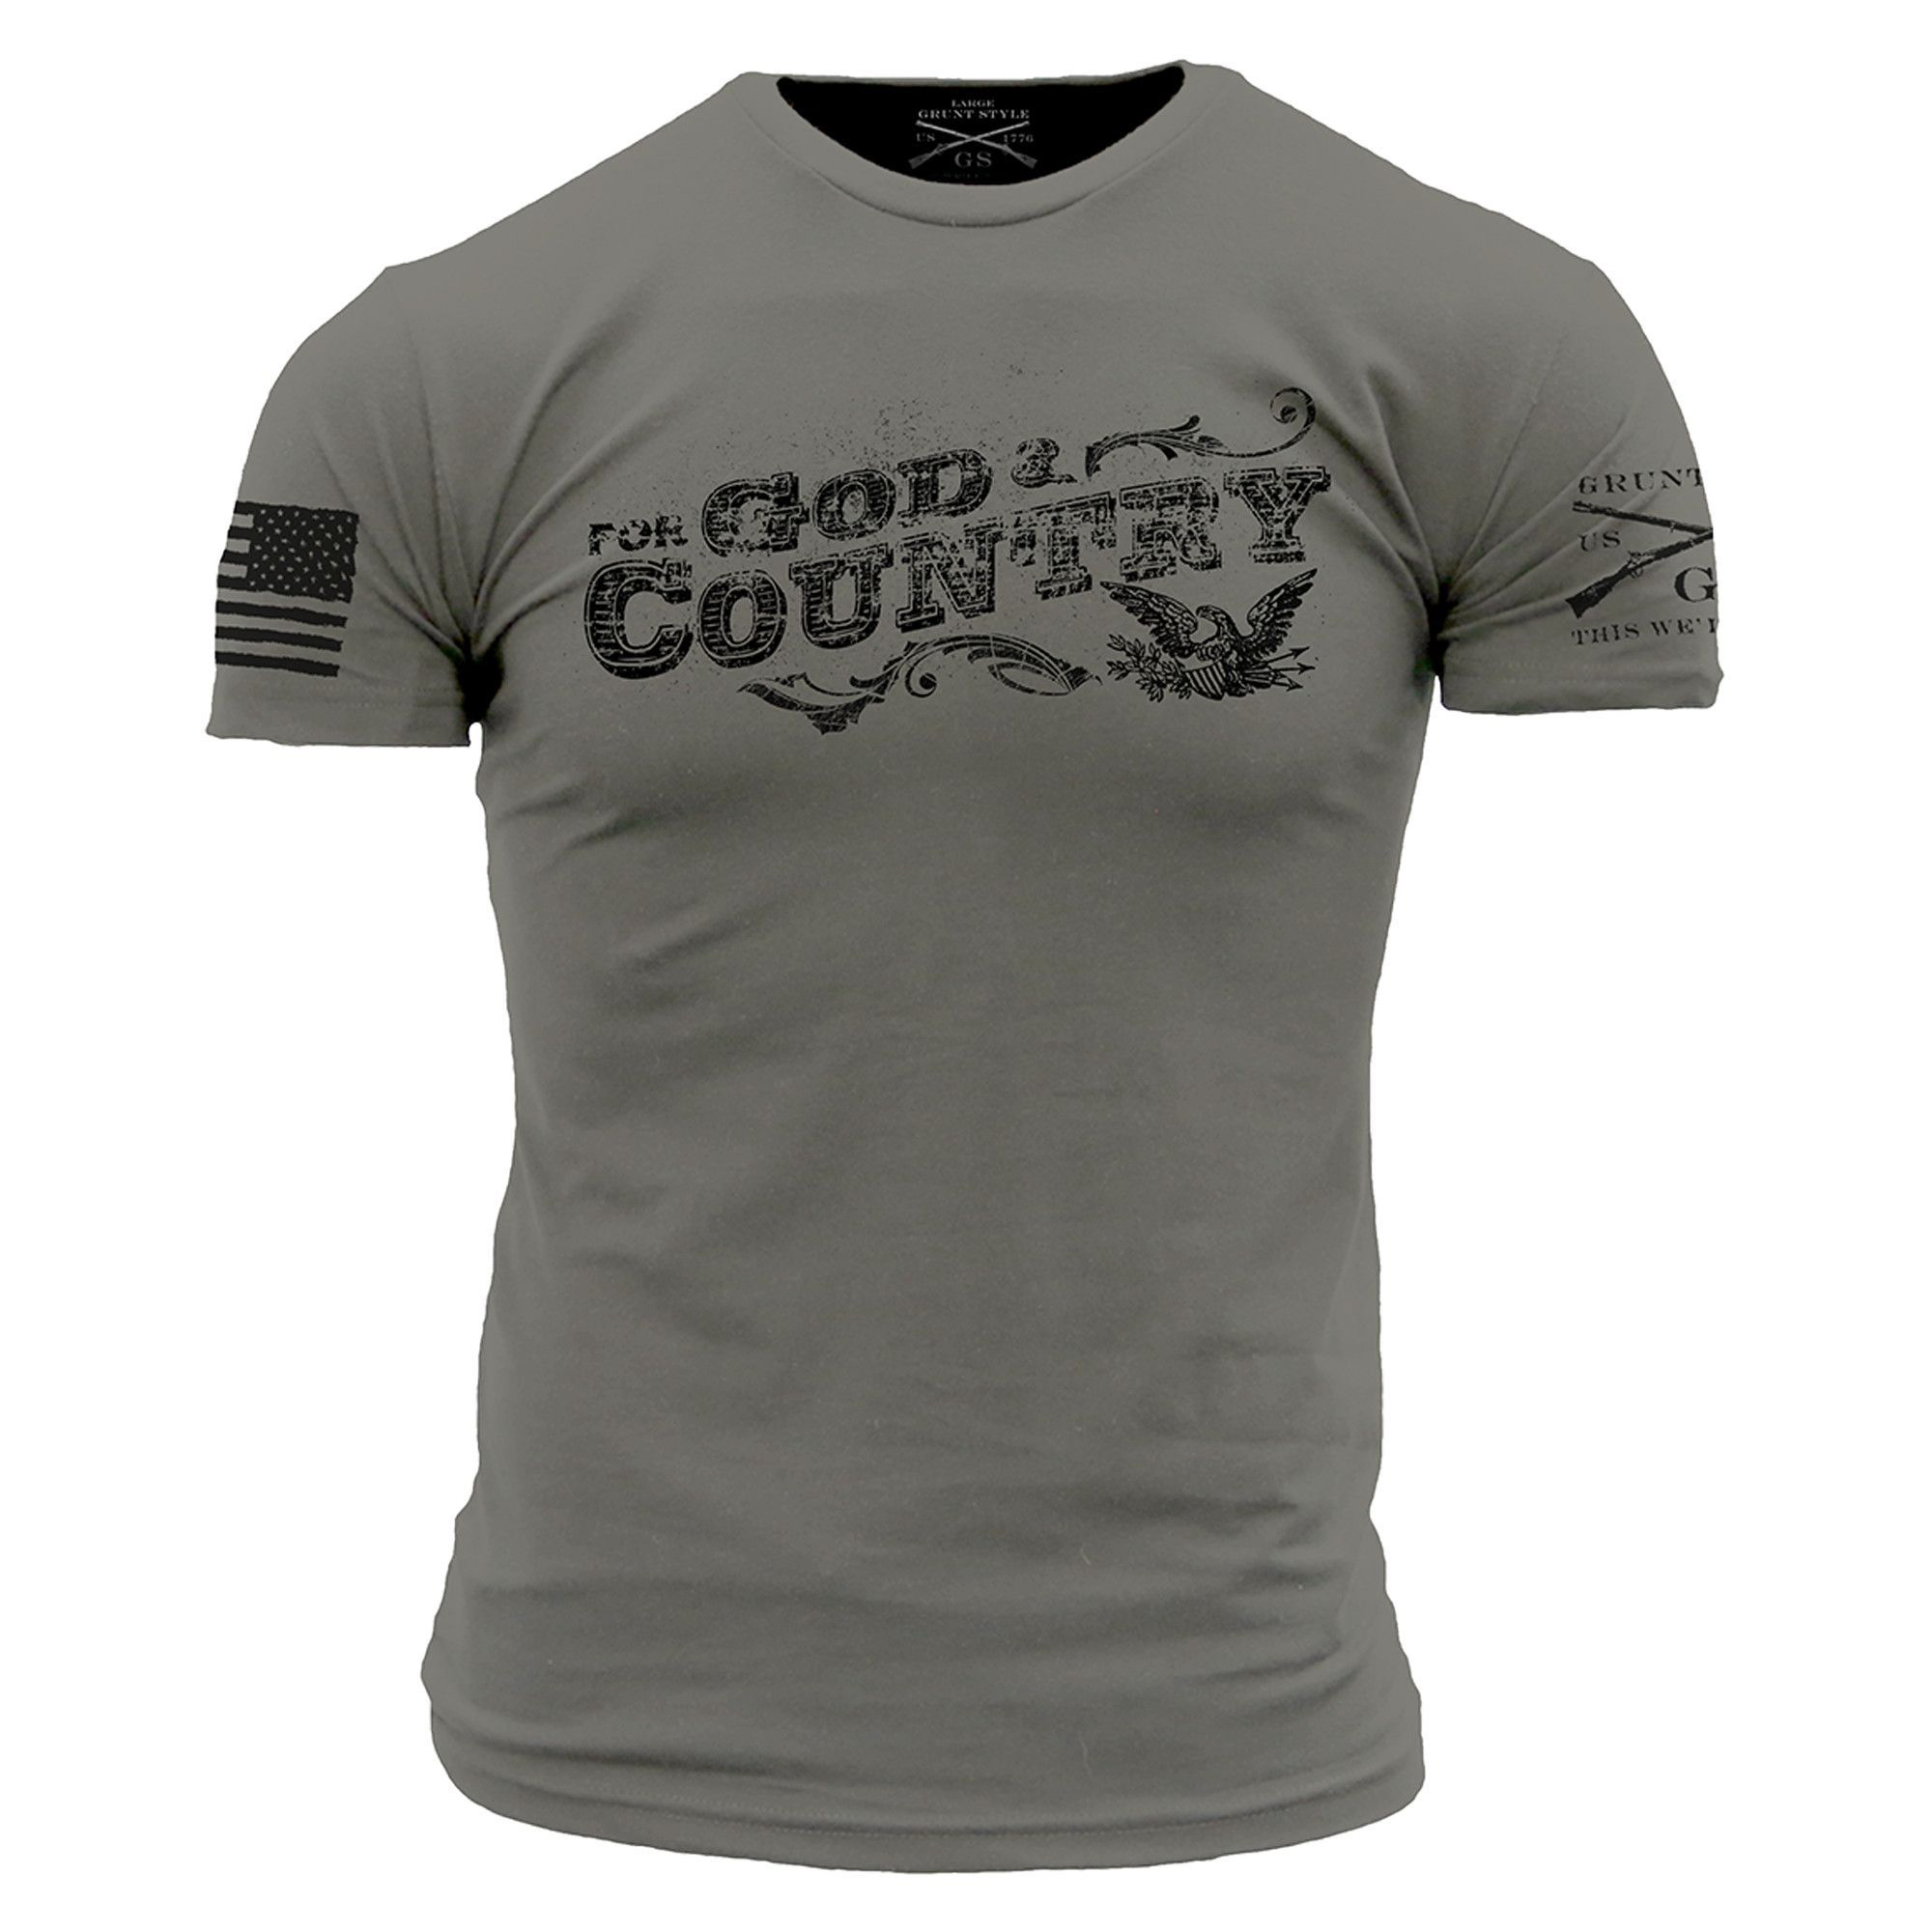 For God and Country T-Shirt- Grunt Style Men's Short Sleeve Tee Shirt